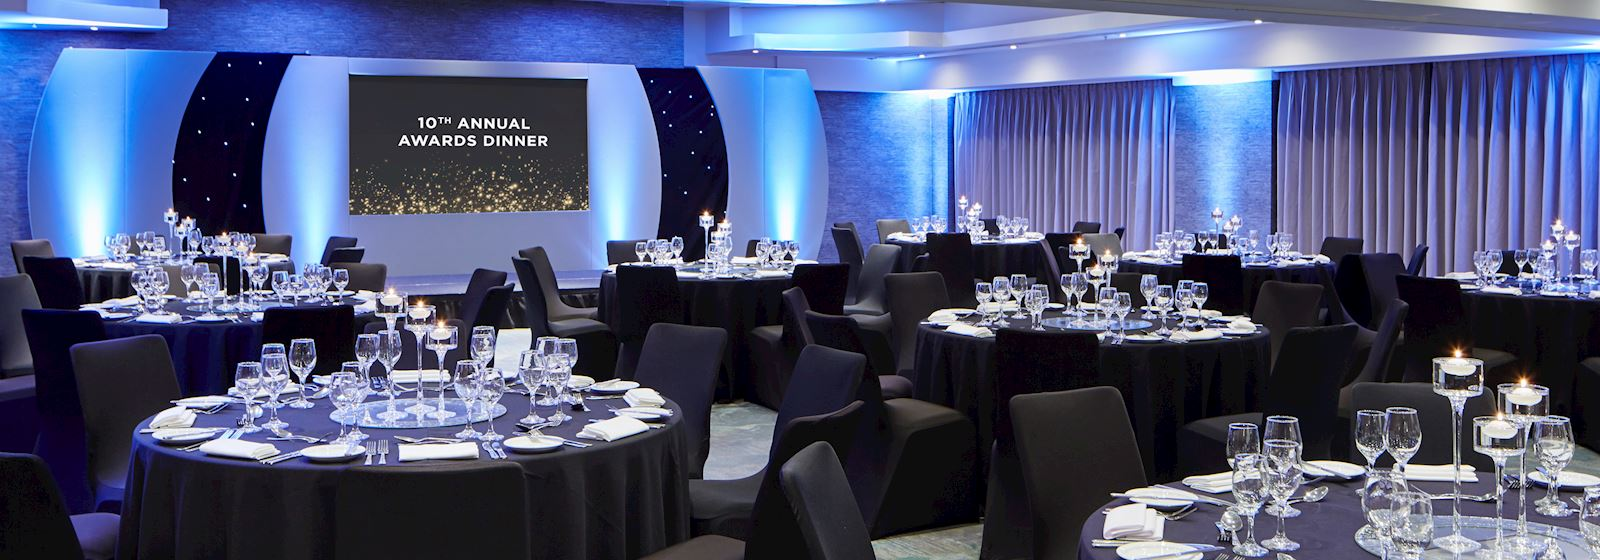 Manchester Airport Marriott Hotel Events